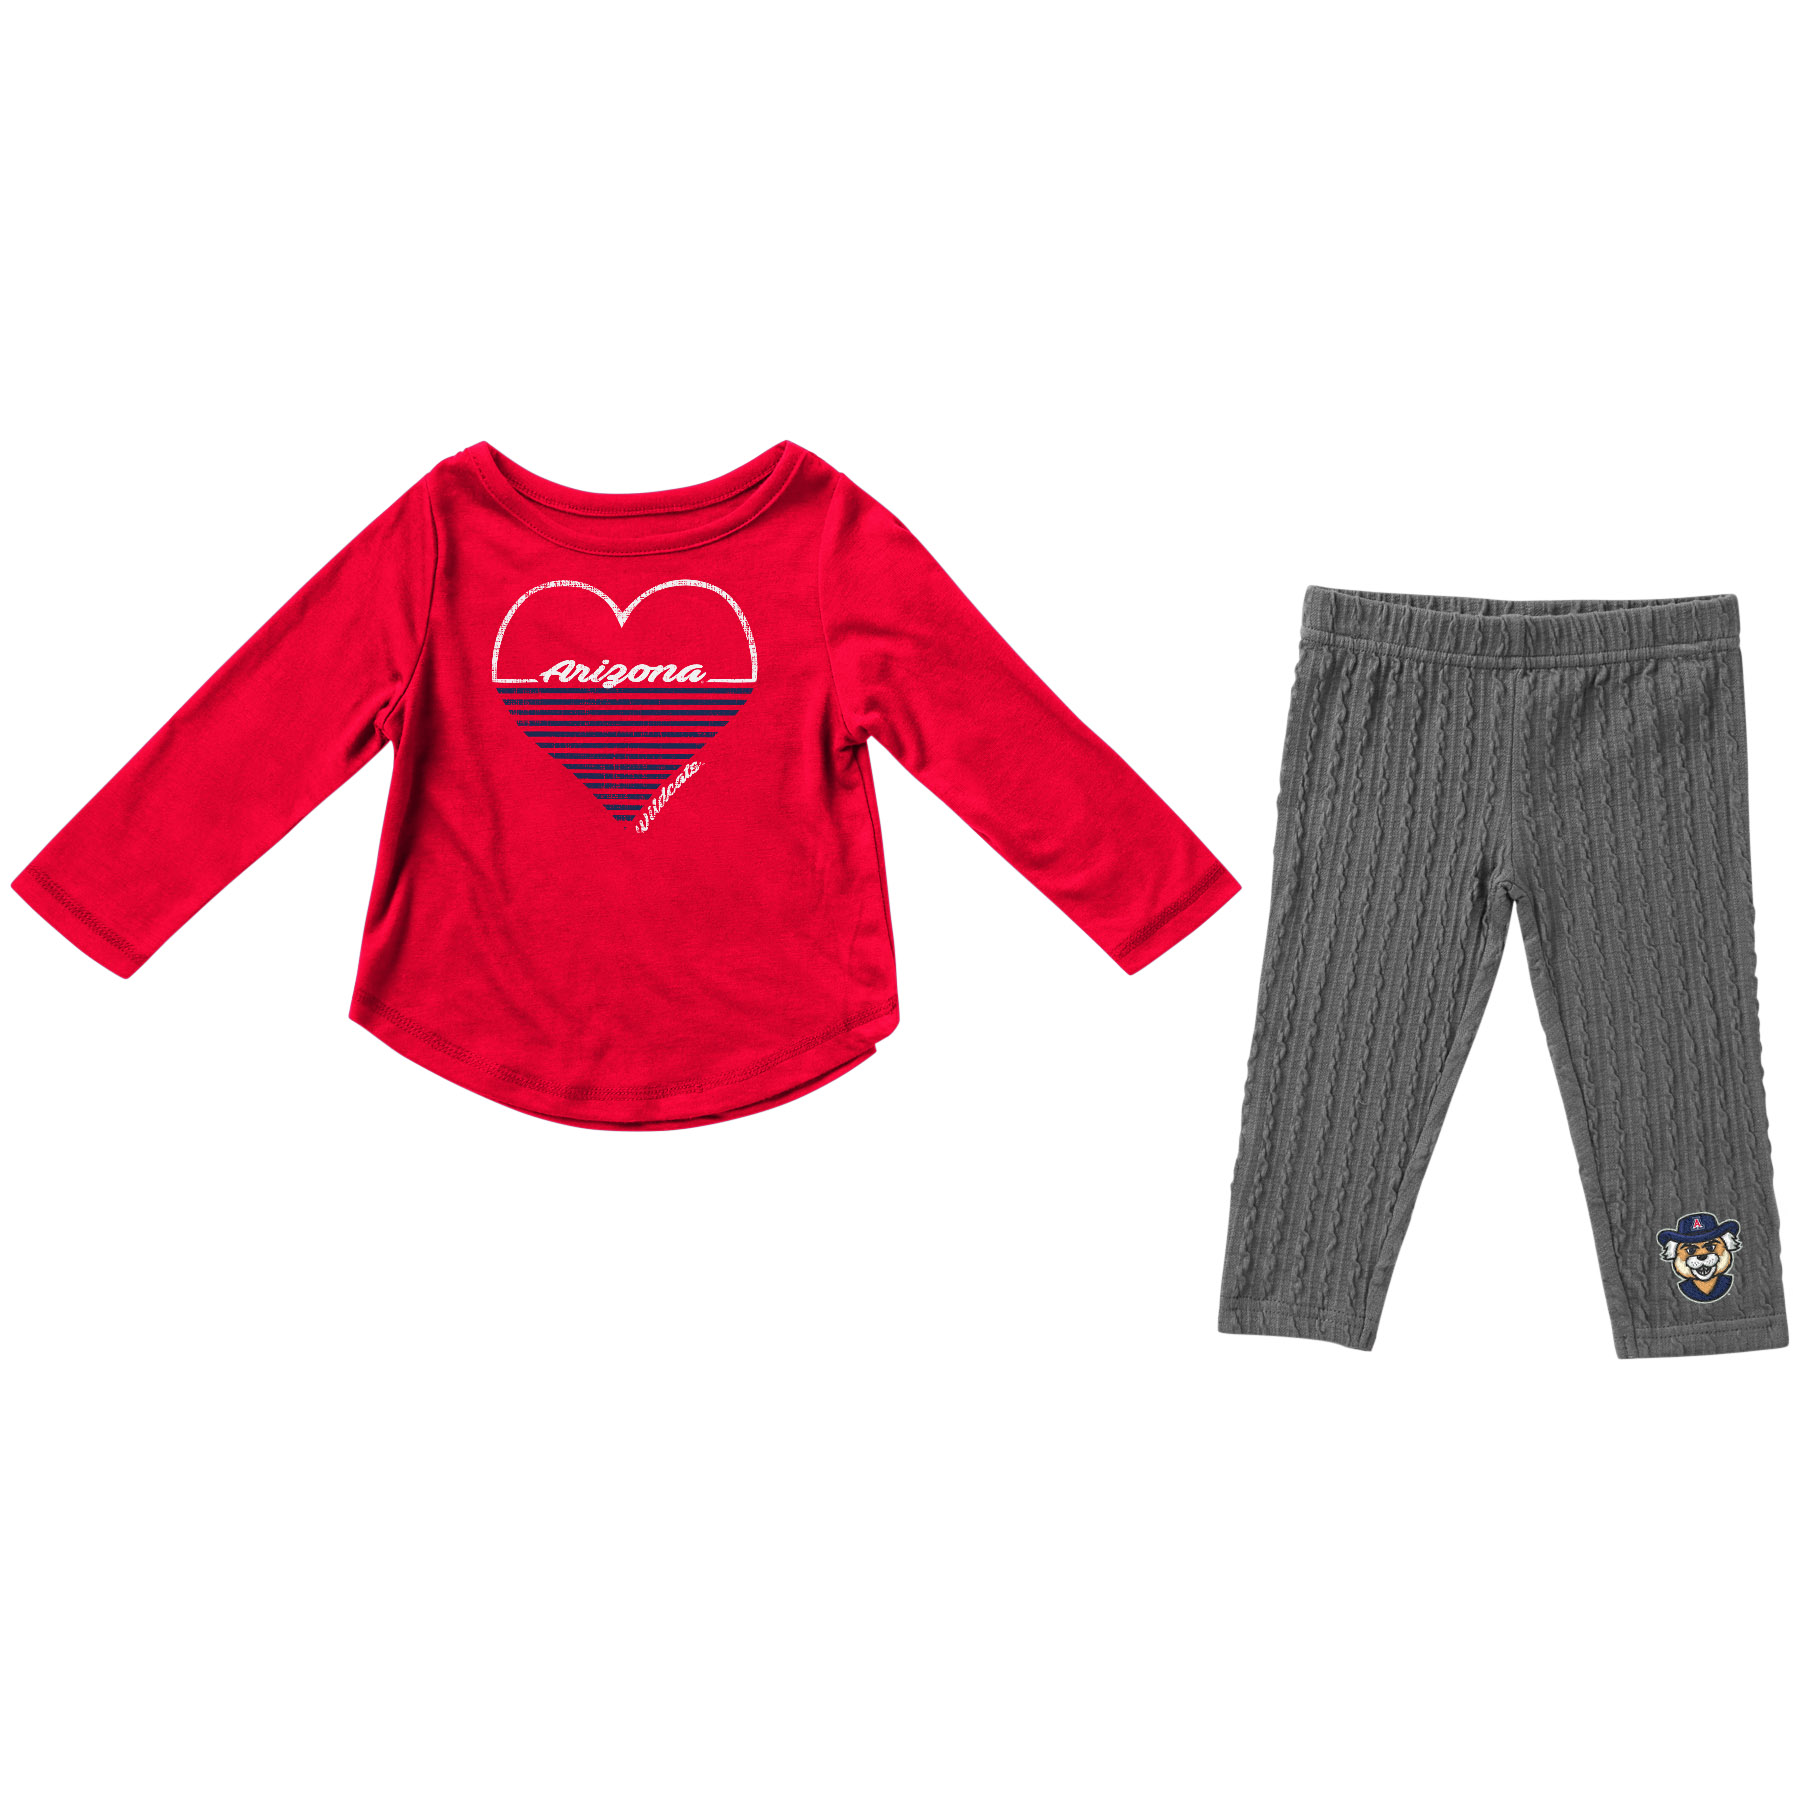 Image For Colosseum: Arizona Toddler Girls Sweetums Top and Bottom Set